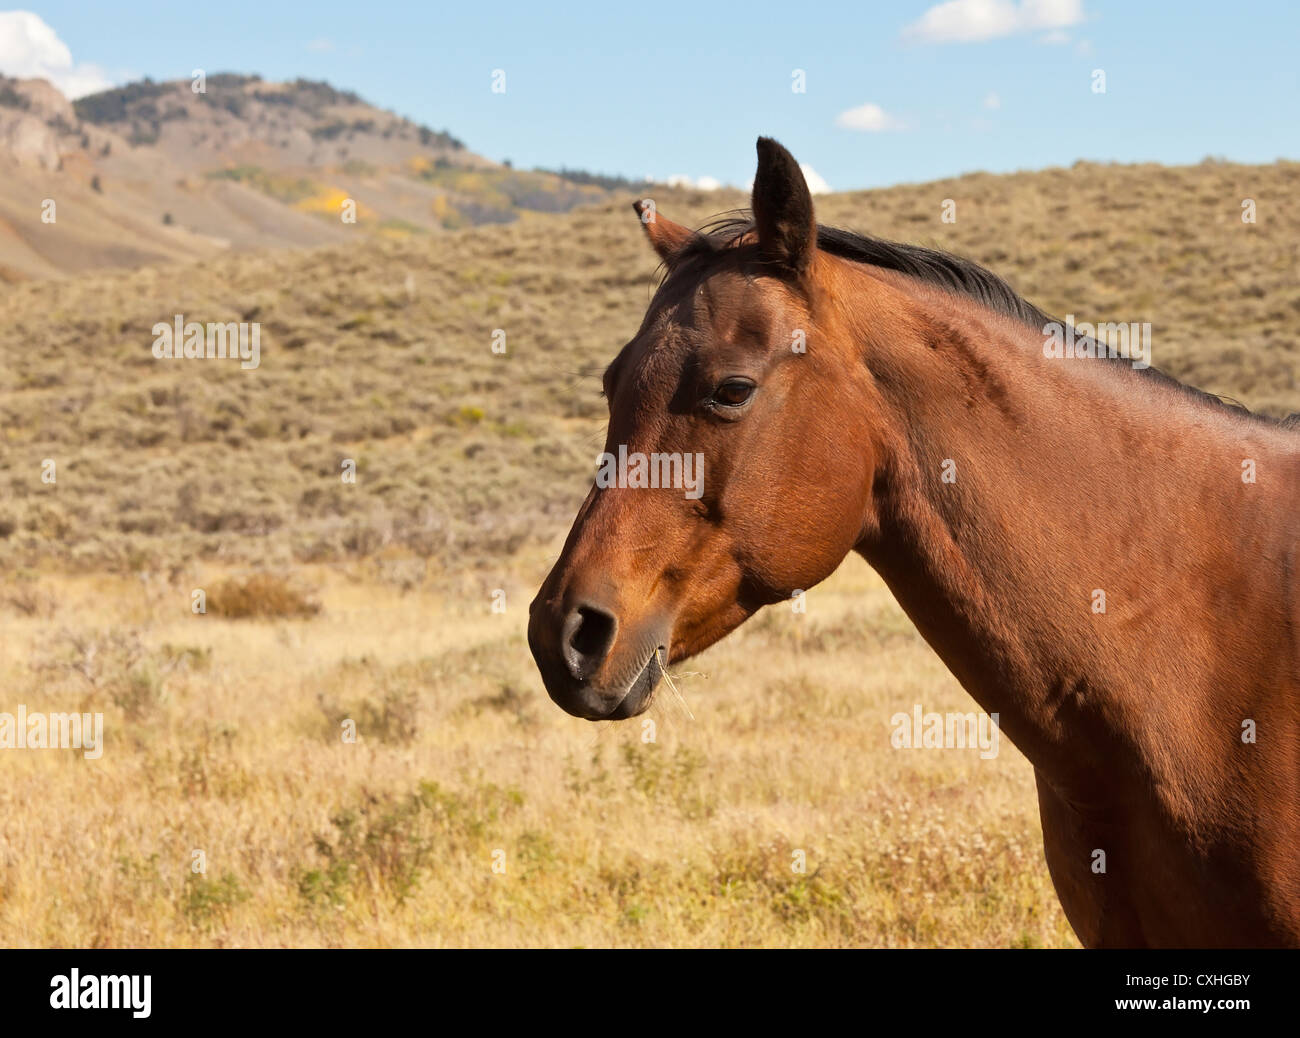 Chestnut brown horse in pasture with mountain in background - Stock Image